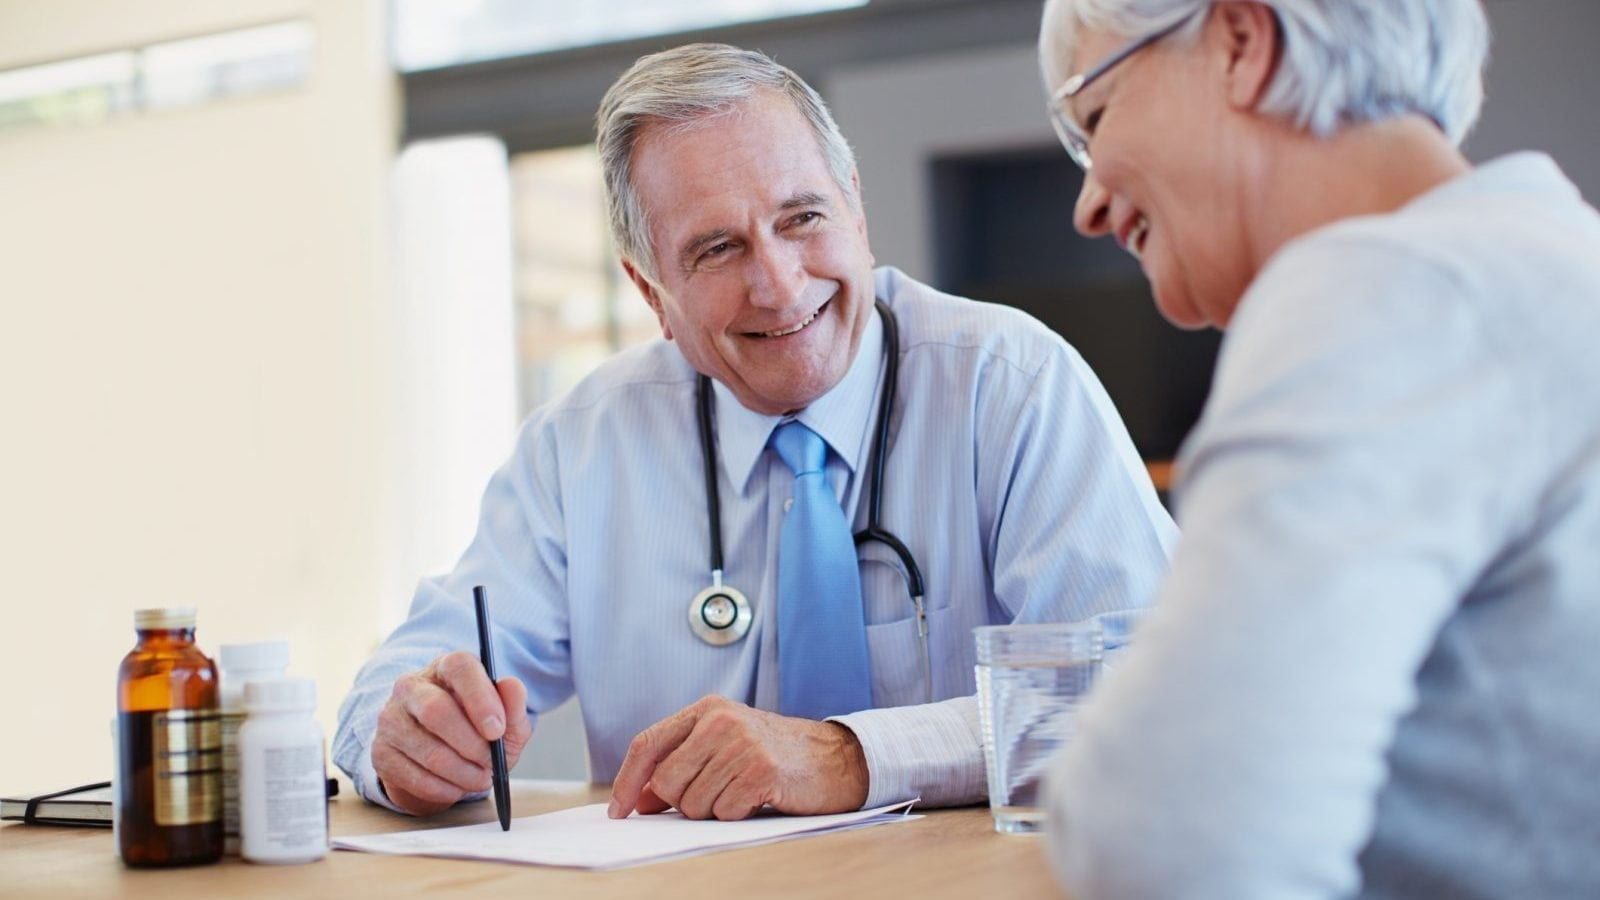 Doctor Meeting With Patient Stock Photo